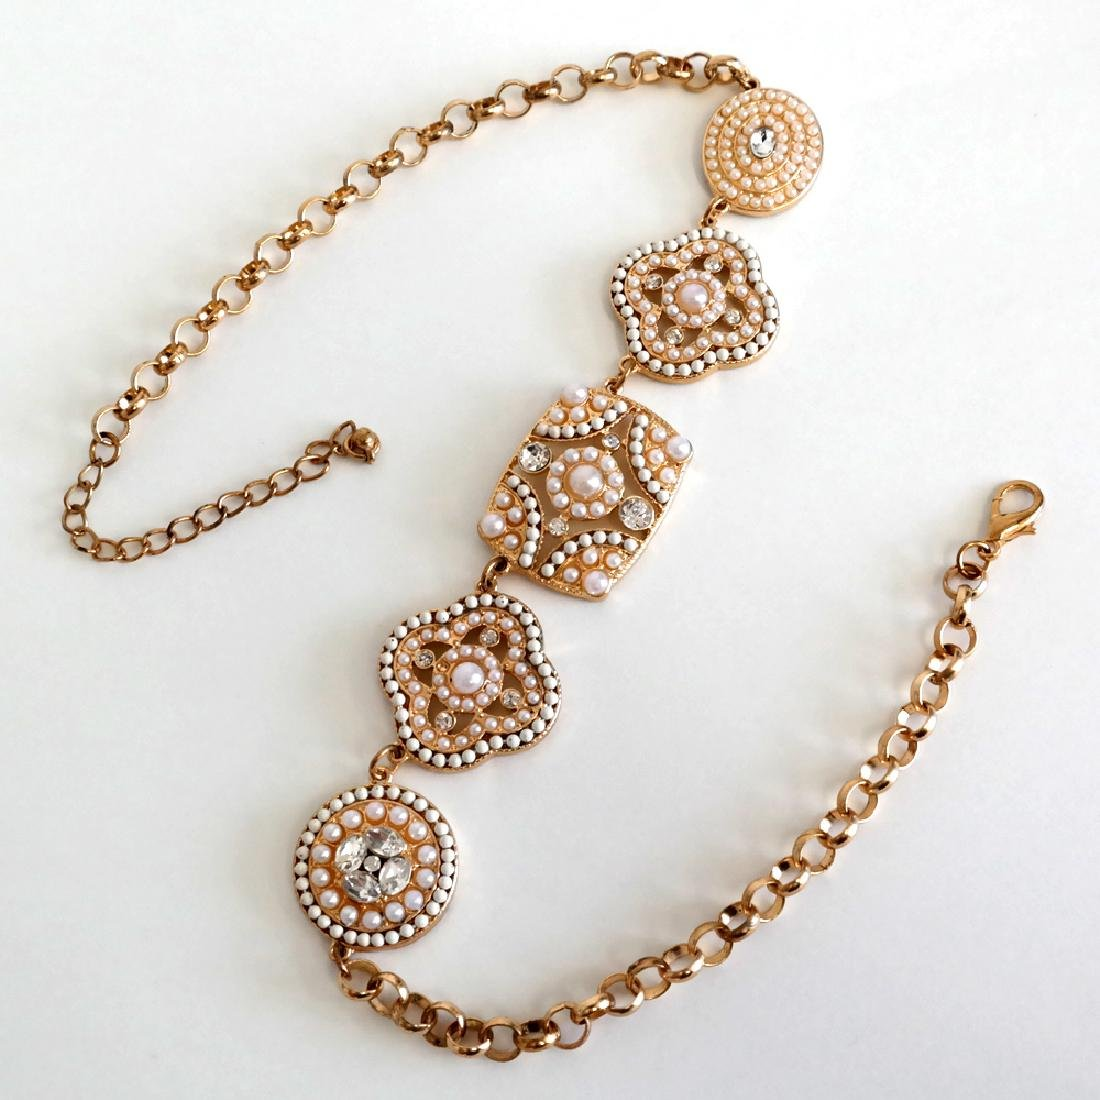 Gold tone necklace with white rhinestones and white - 4